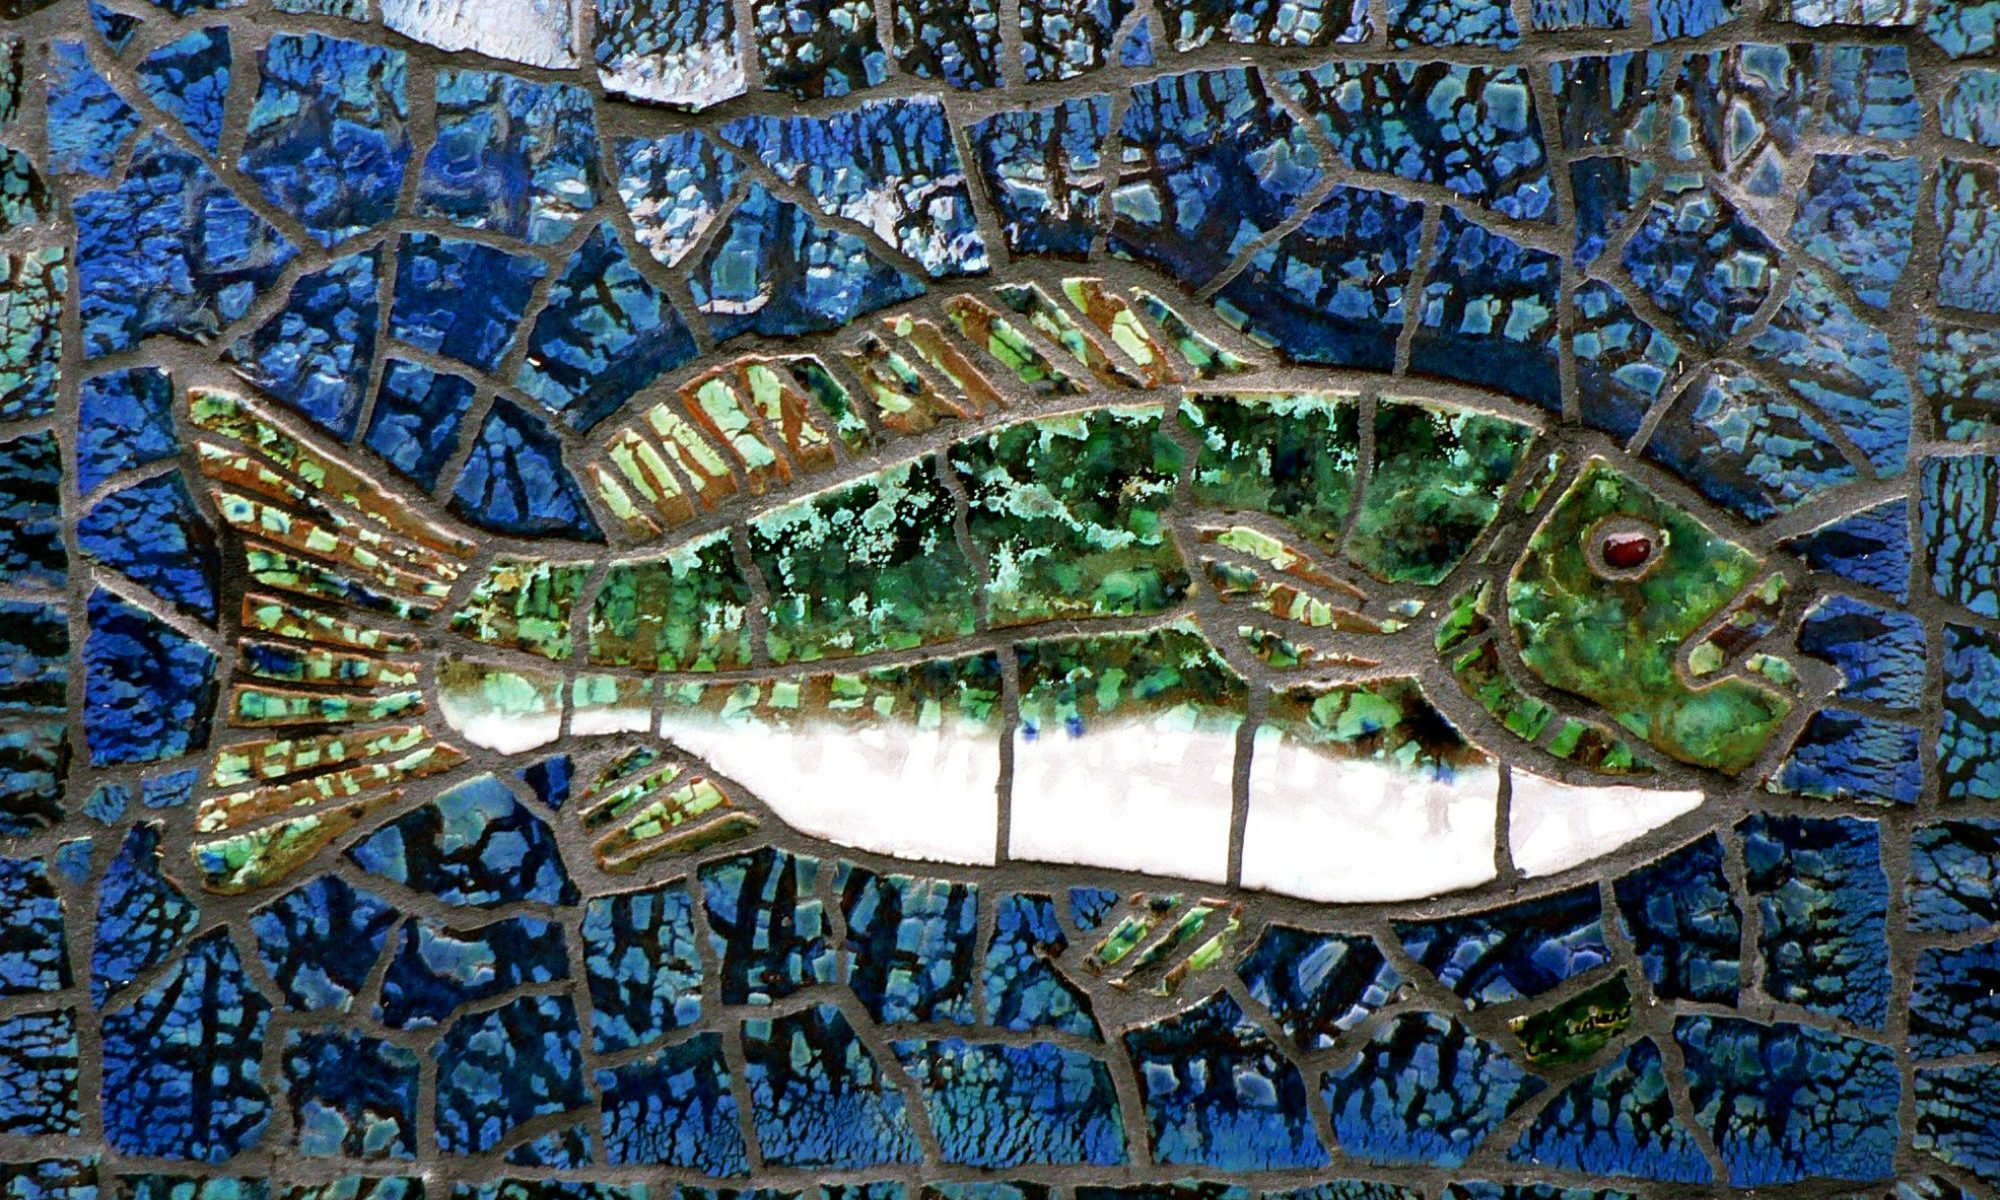 Ceramic fish mosaic